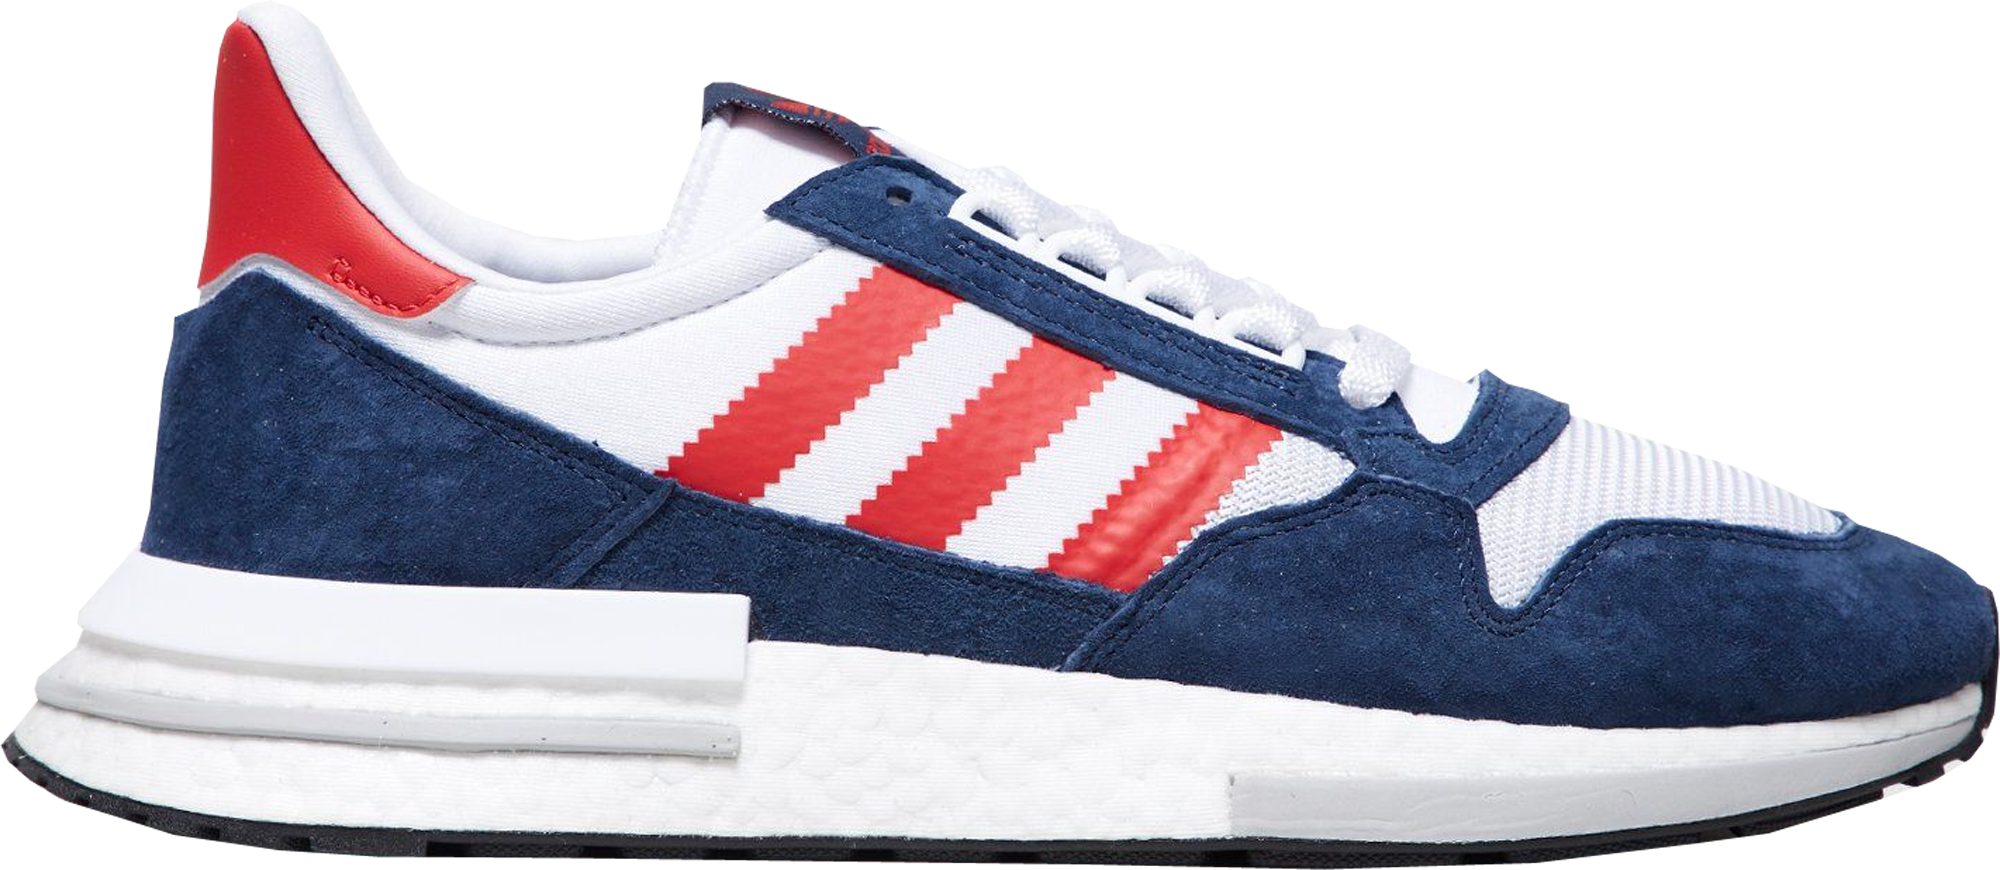 adidas ZX 500 RM size? Navy Red White